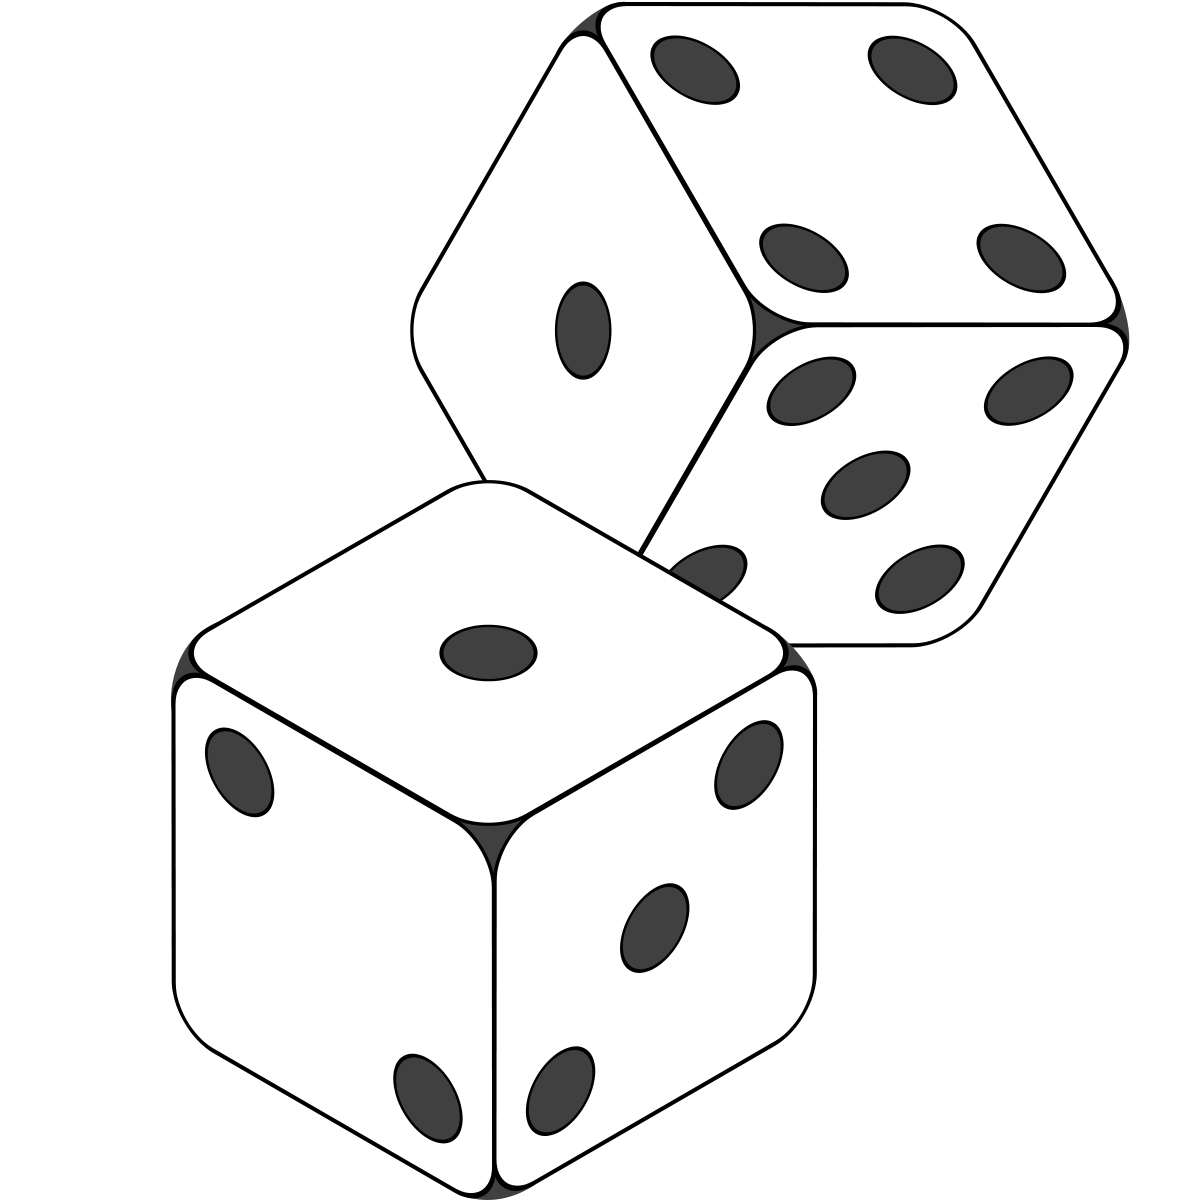 Drawing dice black and white